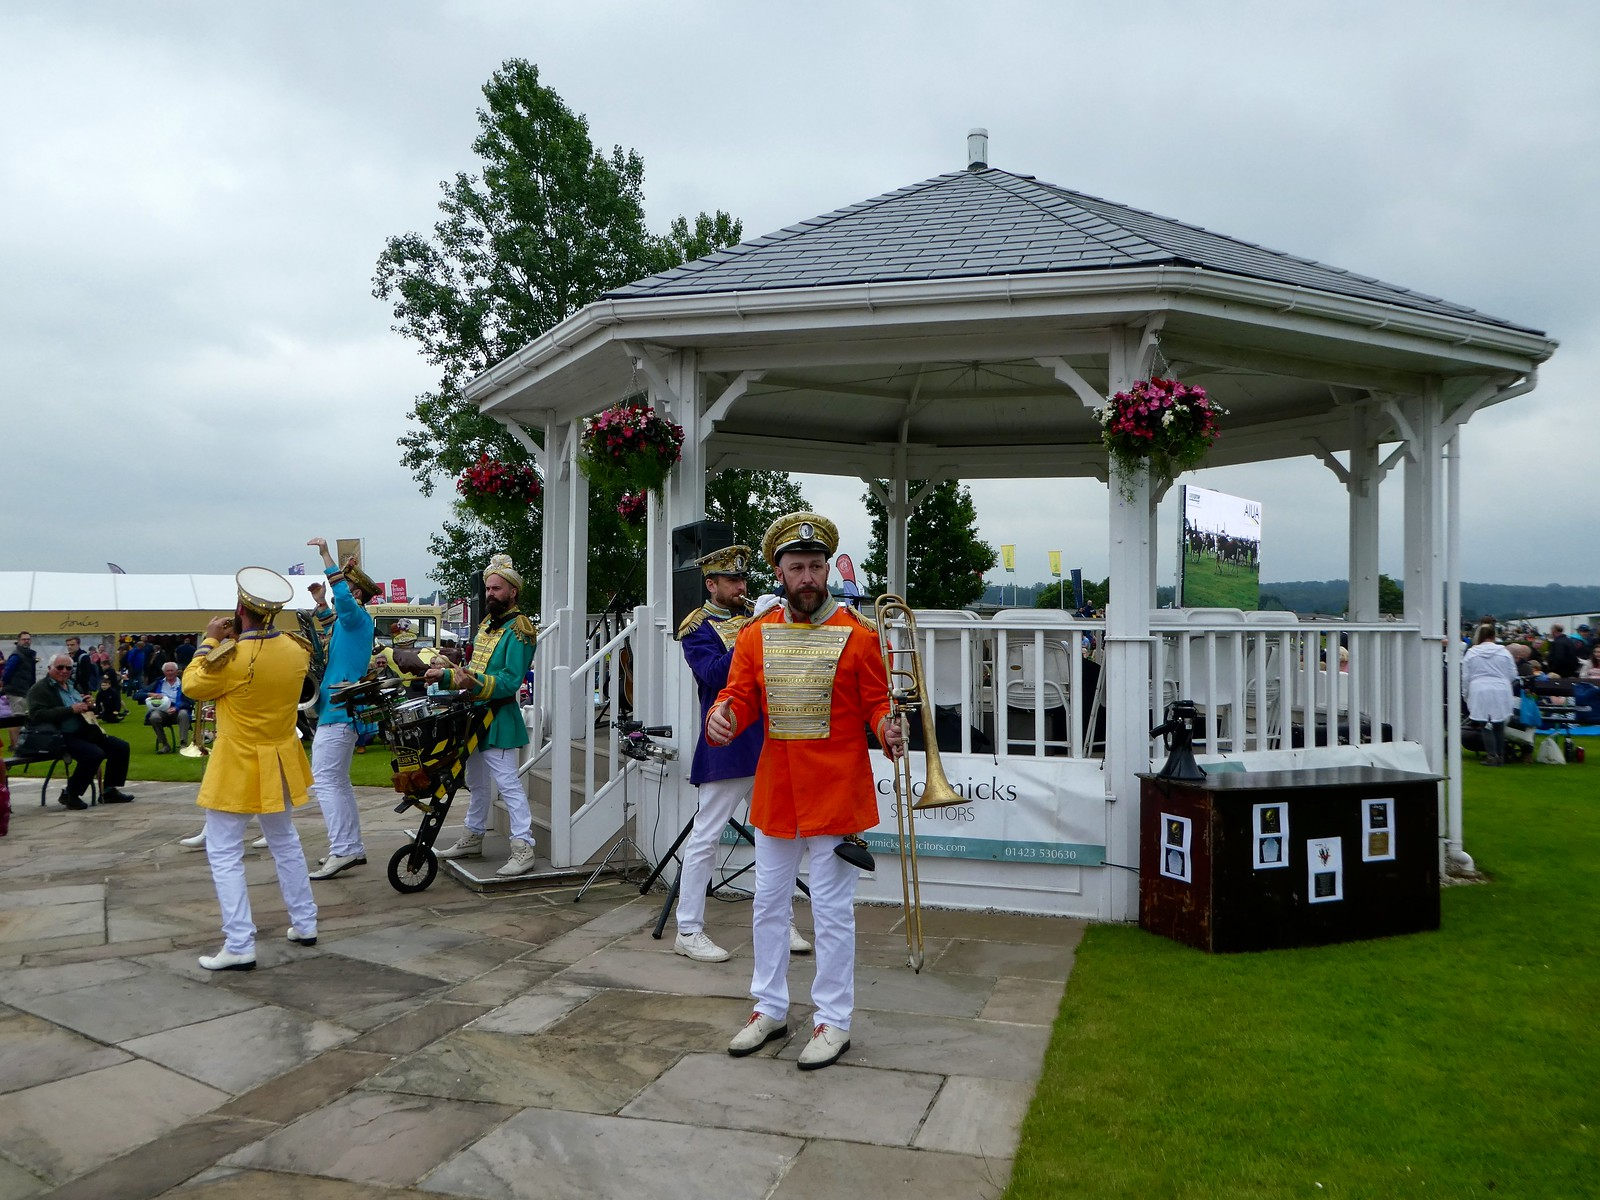 Bandstand, at the Great Yorkshire Show, Harrogate